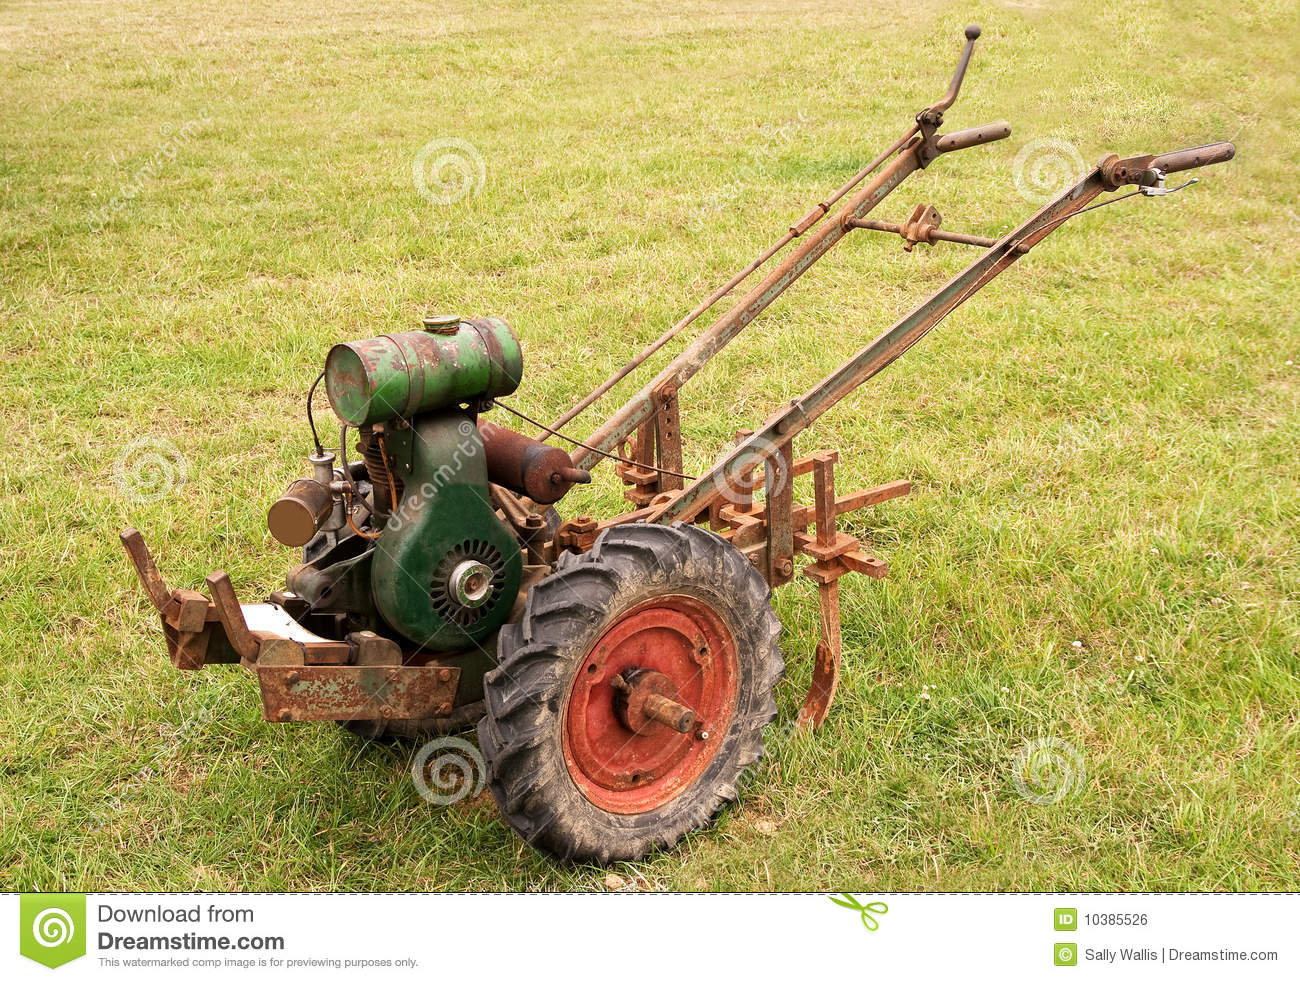 Old fashioned Garden Tiller Or Rotovator Royalty Free Stock Image